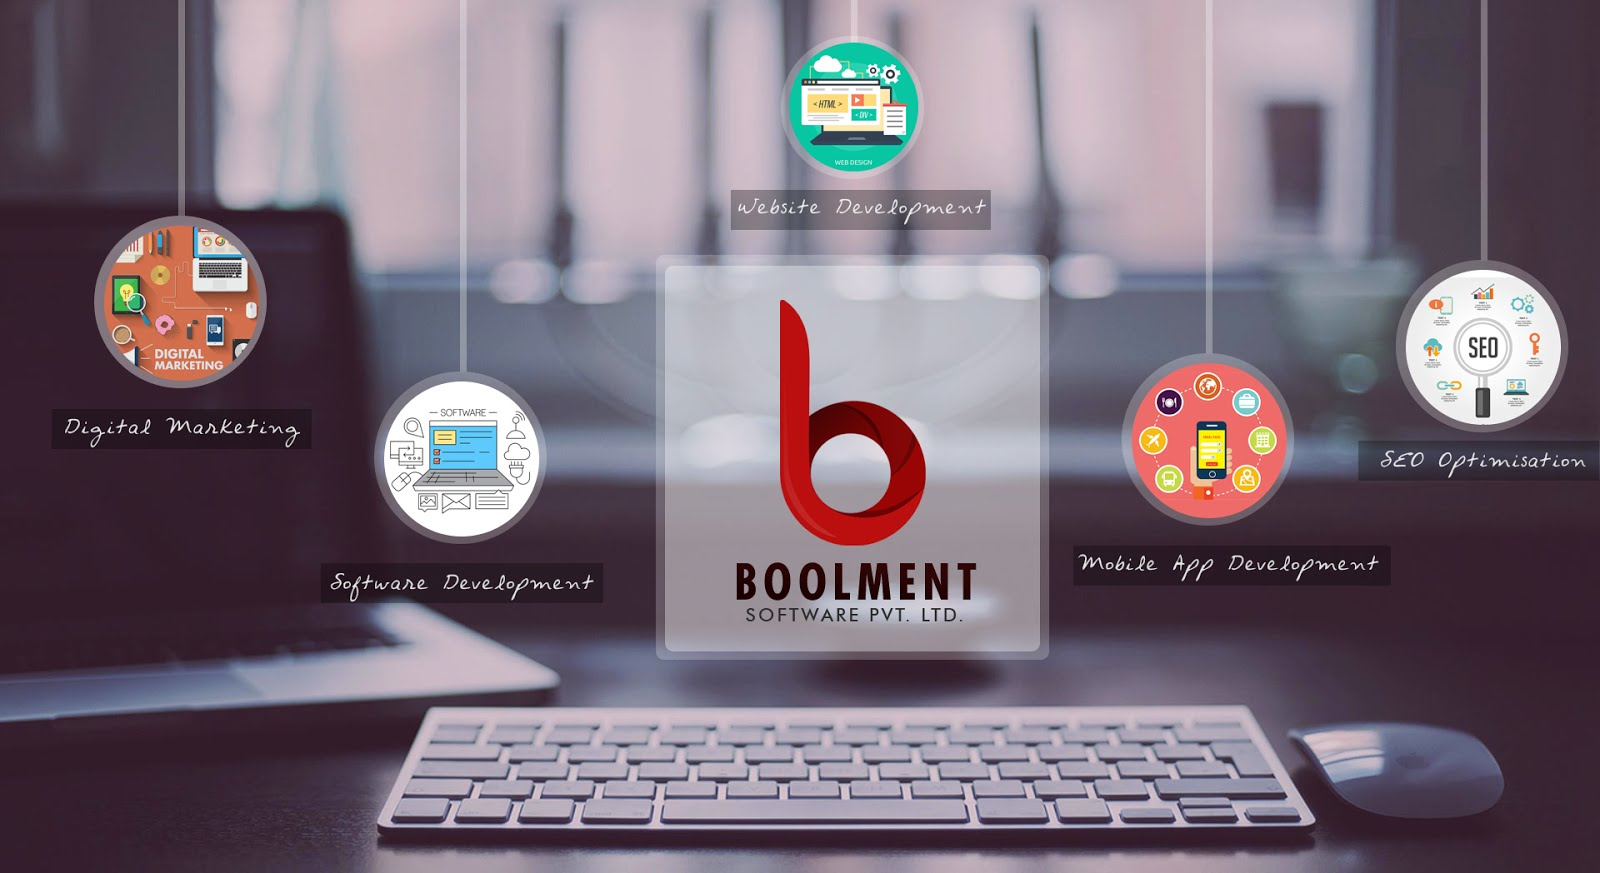 Boolment Software Development Pvt. Ltd.